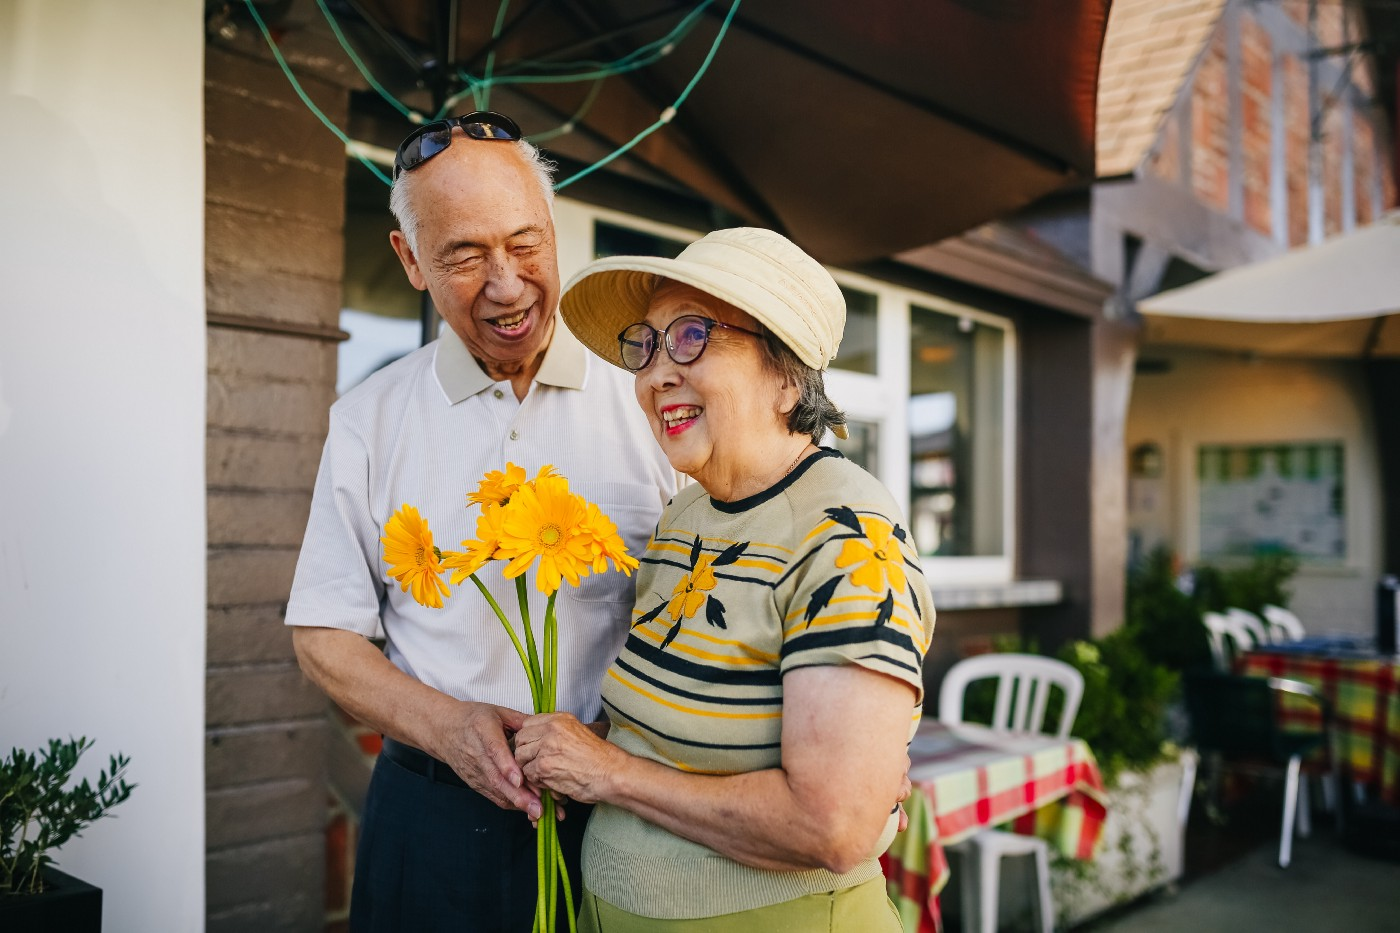 Two seniors, one is holding yellow flowers and the other one is looking at them.